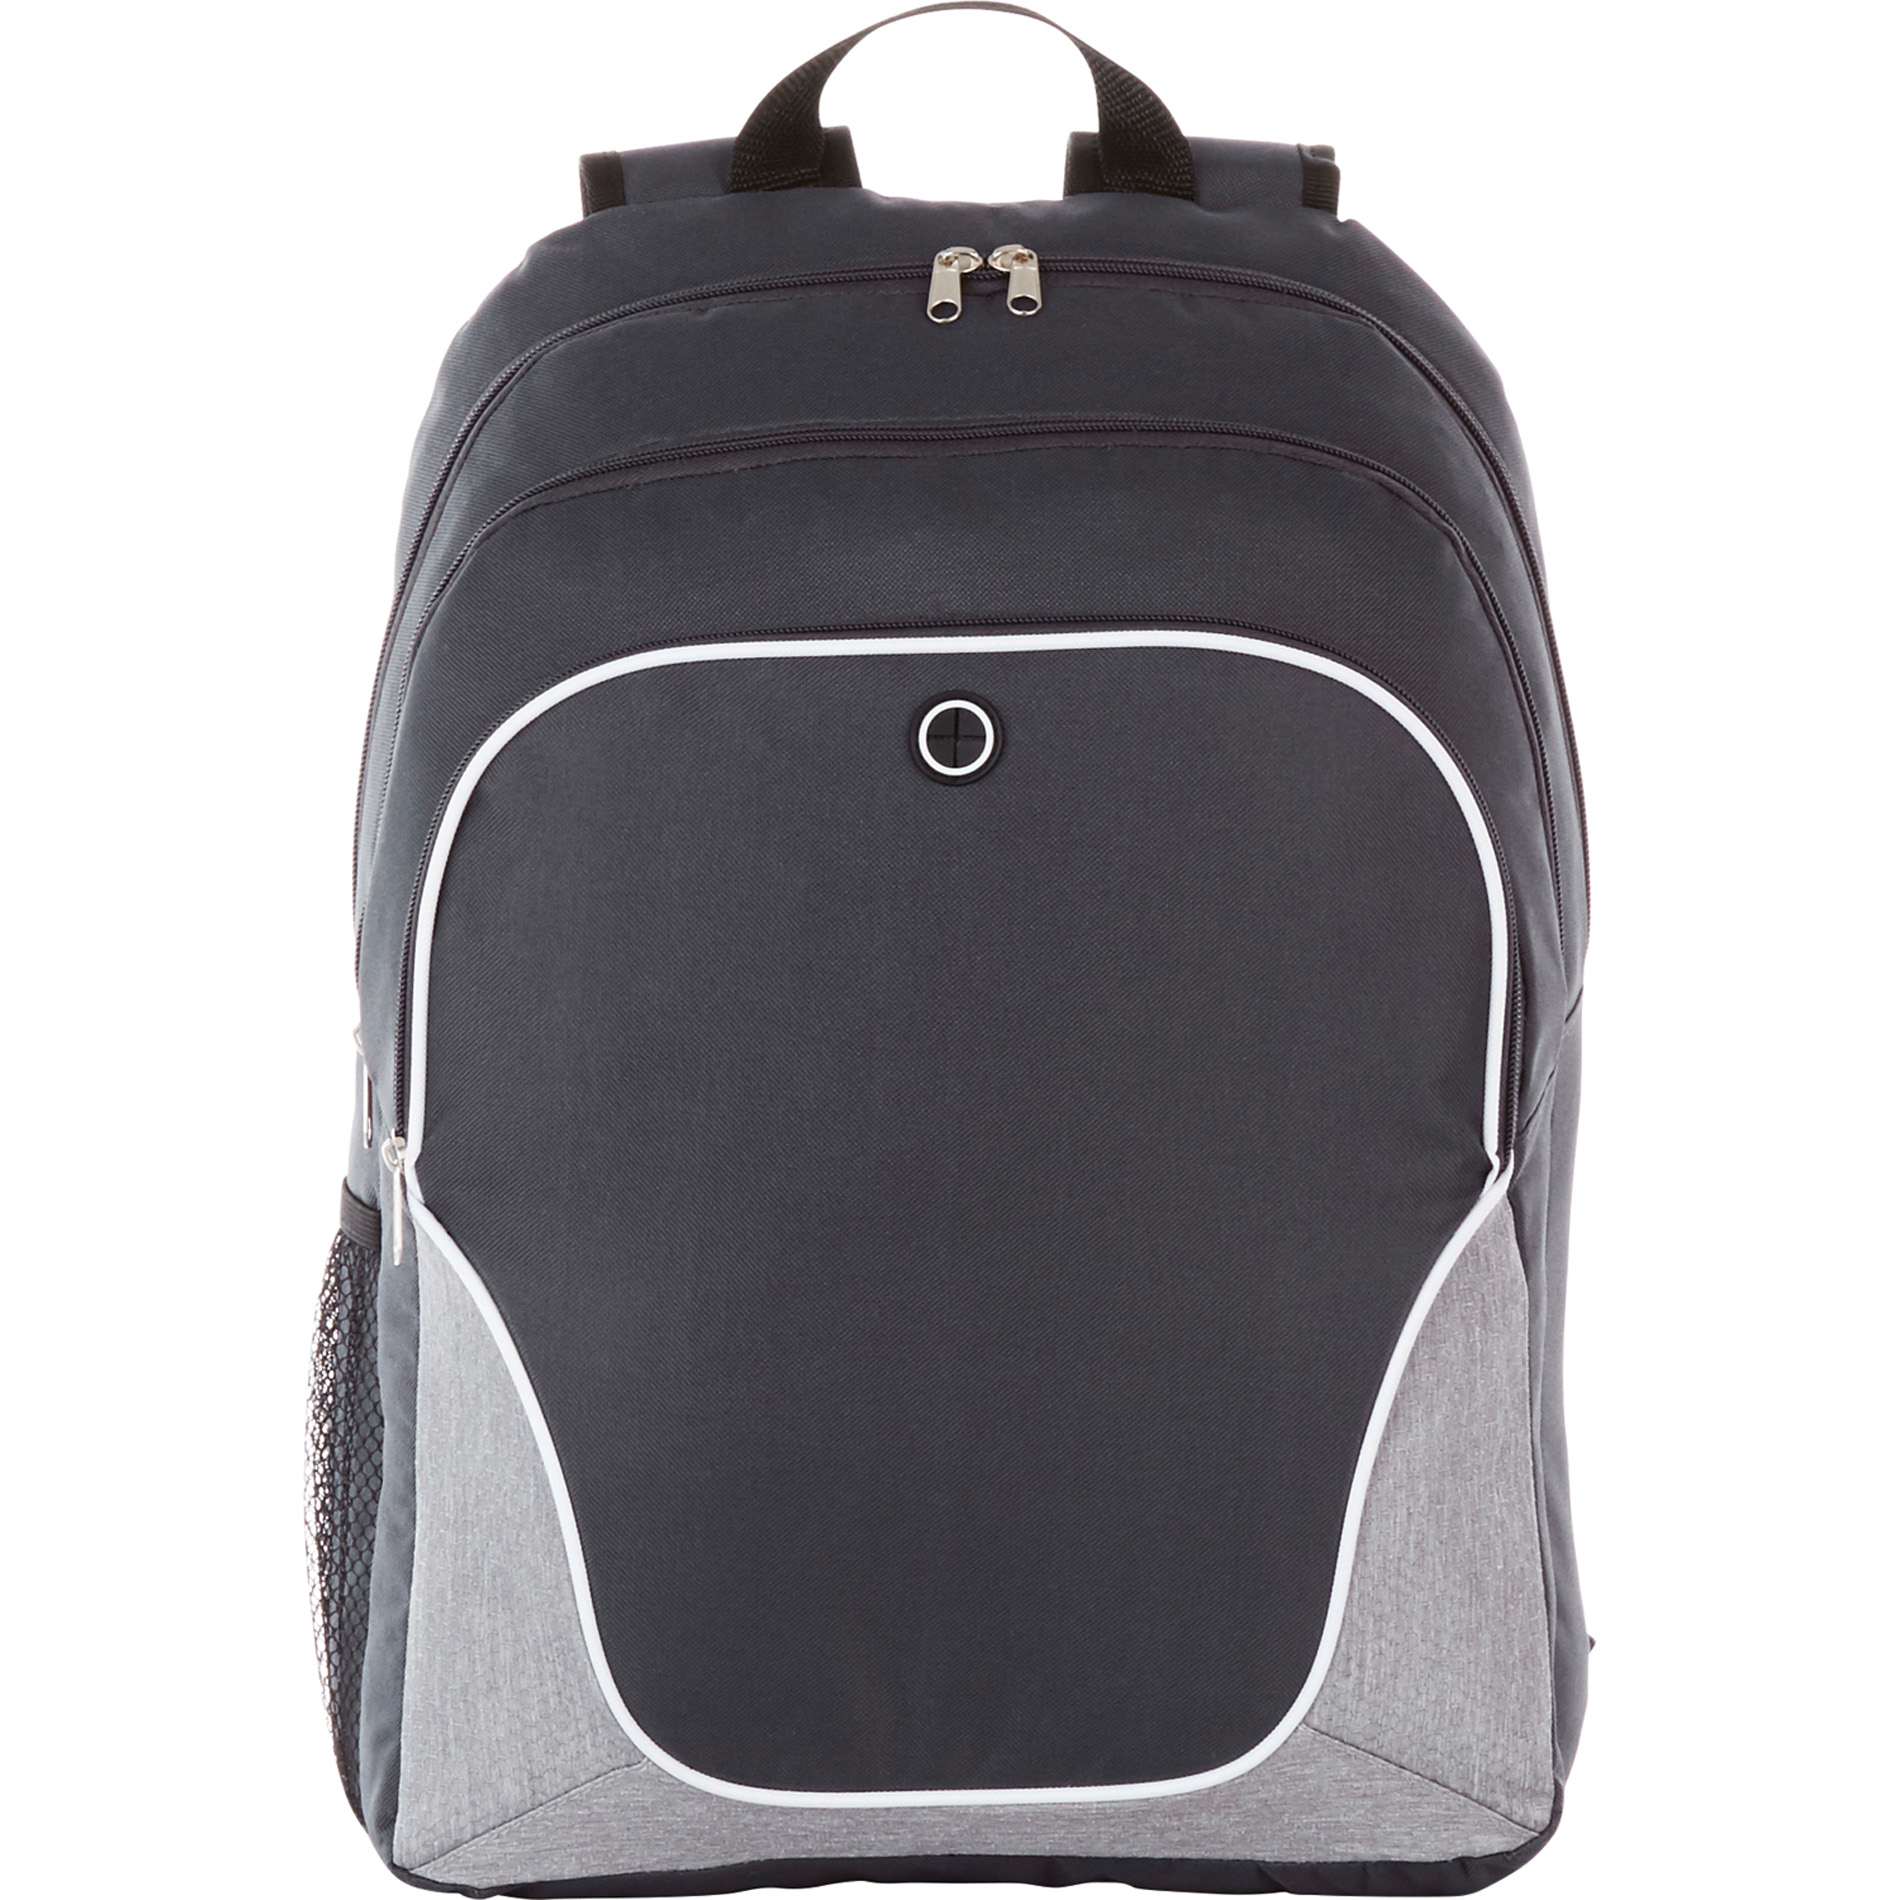 "LEEDS 3750-06 - Triple 15"" Computer Backpack"